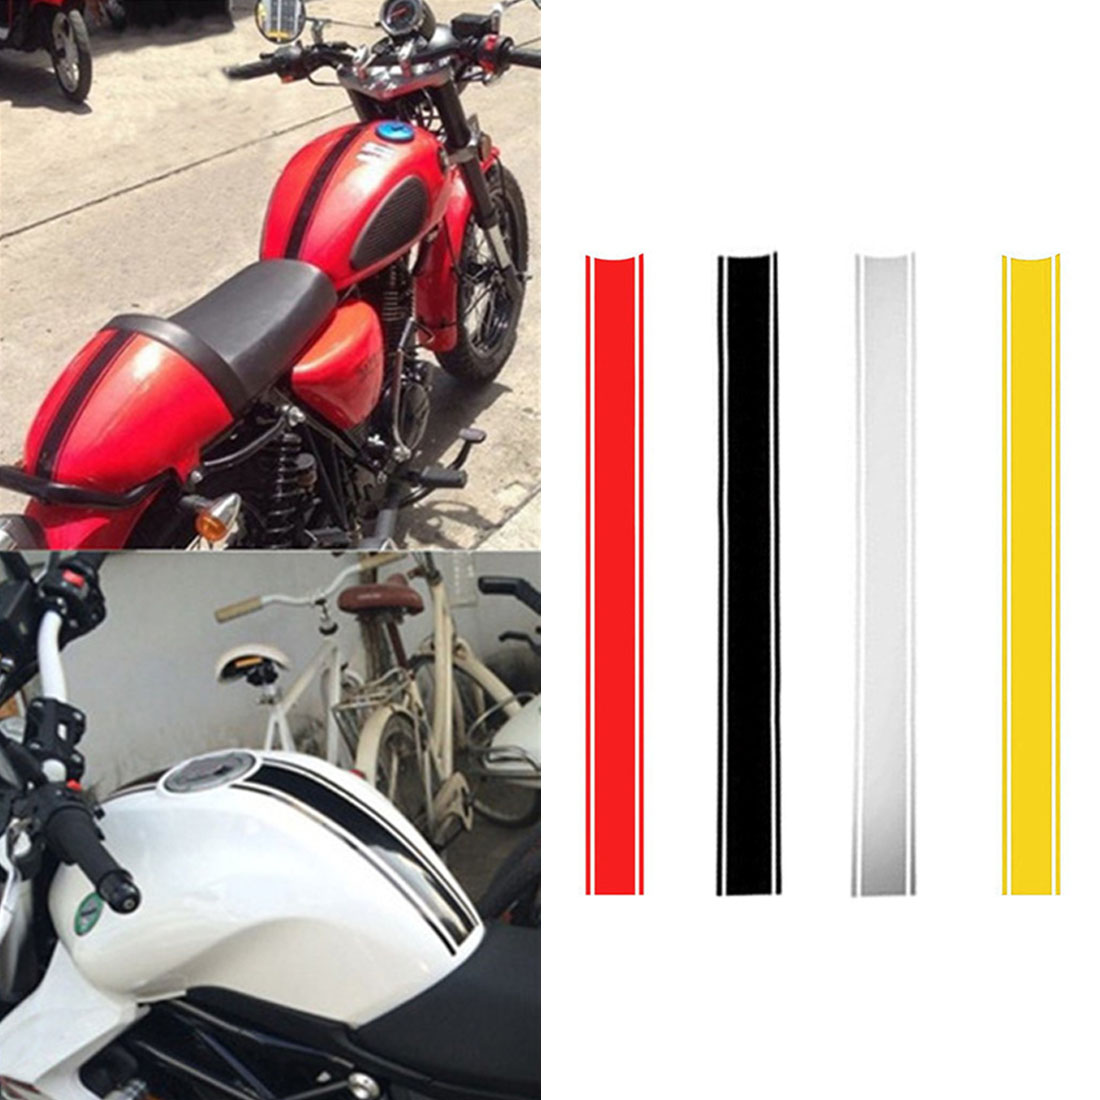 Dewtreetali 50 x 4.5 cm Motorcycle DIY Tank Fairing Cowl Vinyl Stripe Pinstripe Decal Sticker For Racer Hot Sale